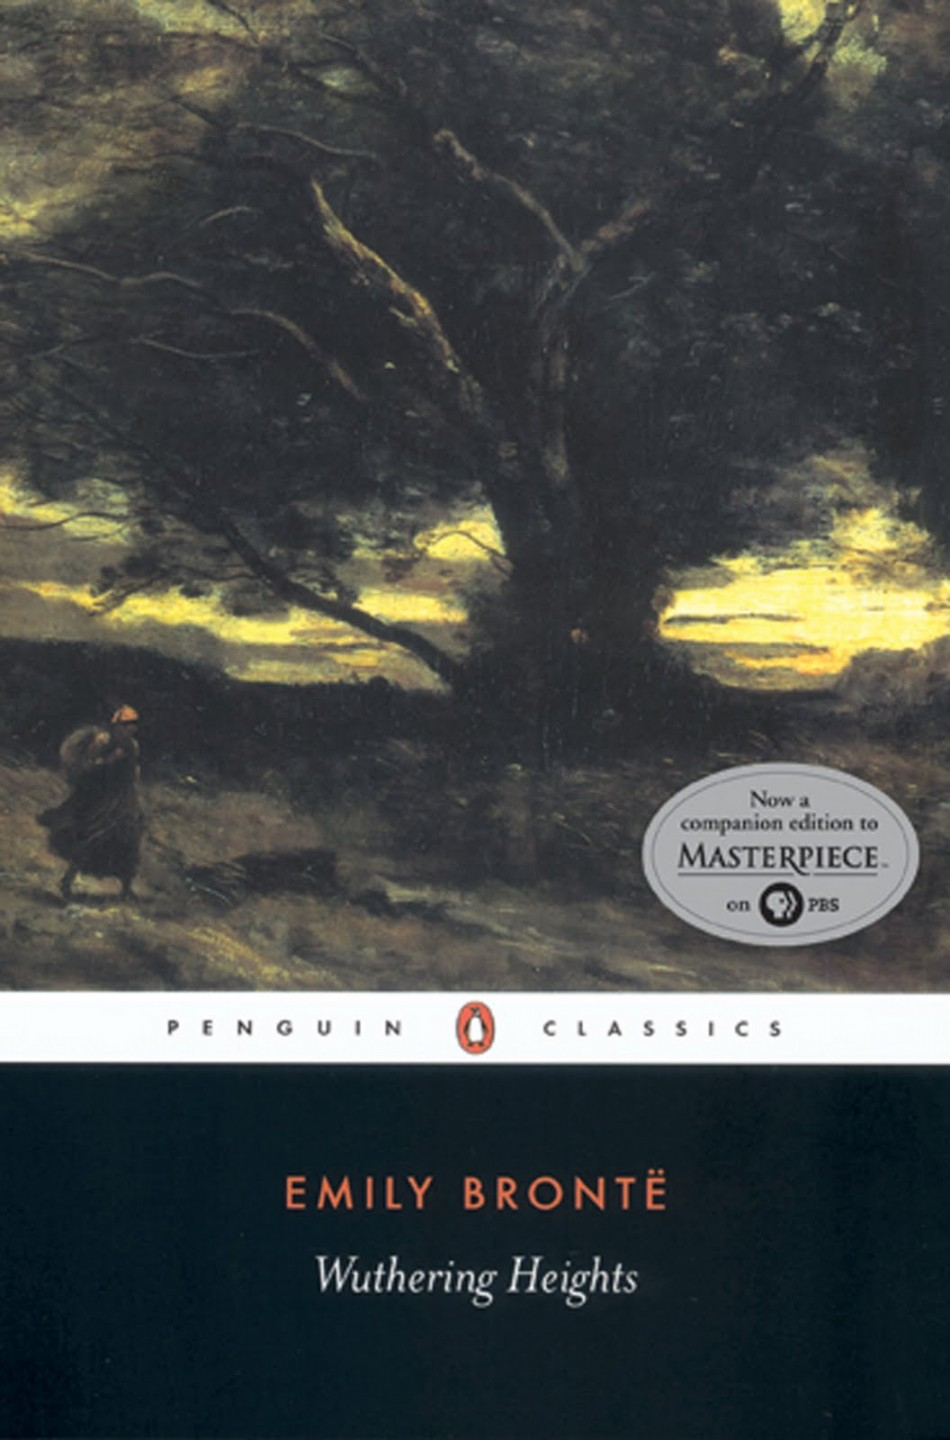 emily bronte s wuthering heights mirabile dictu penguin wuthering heights by emily bronte